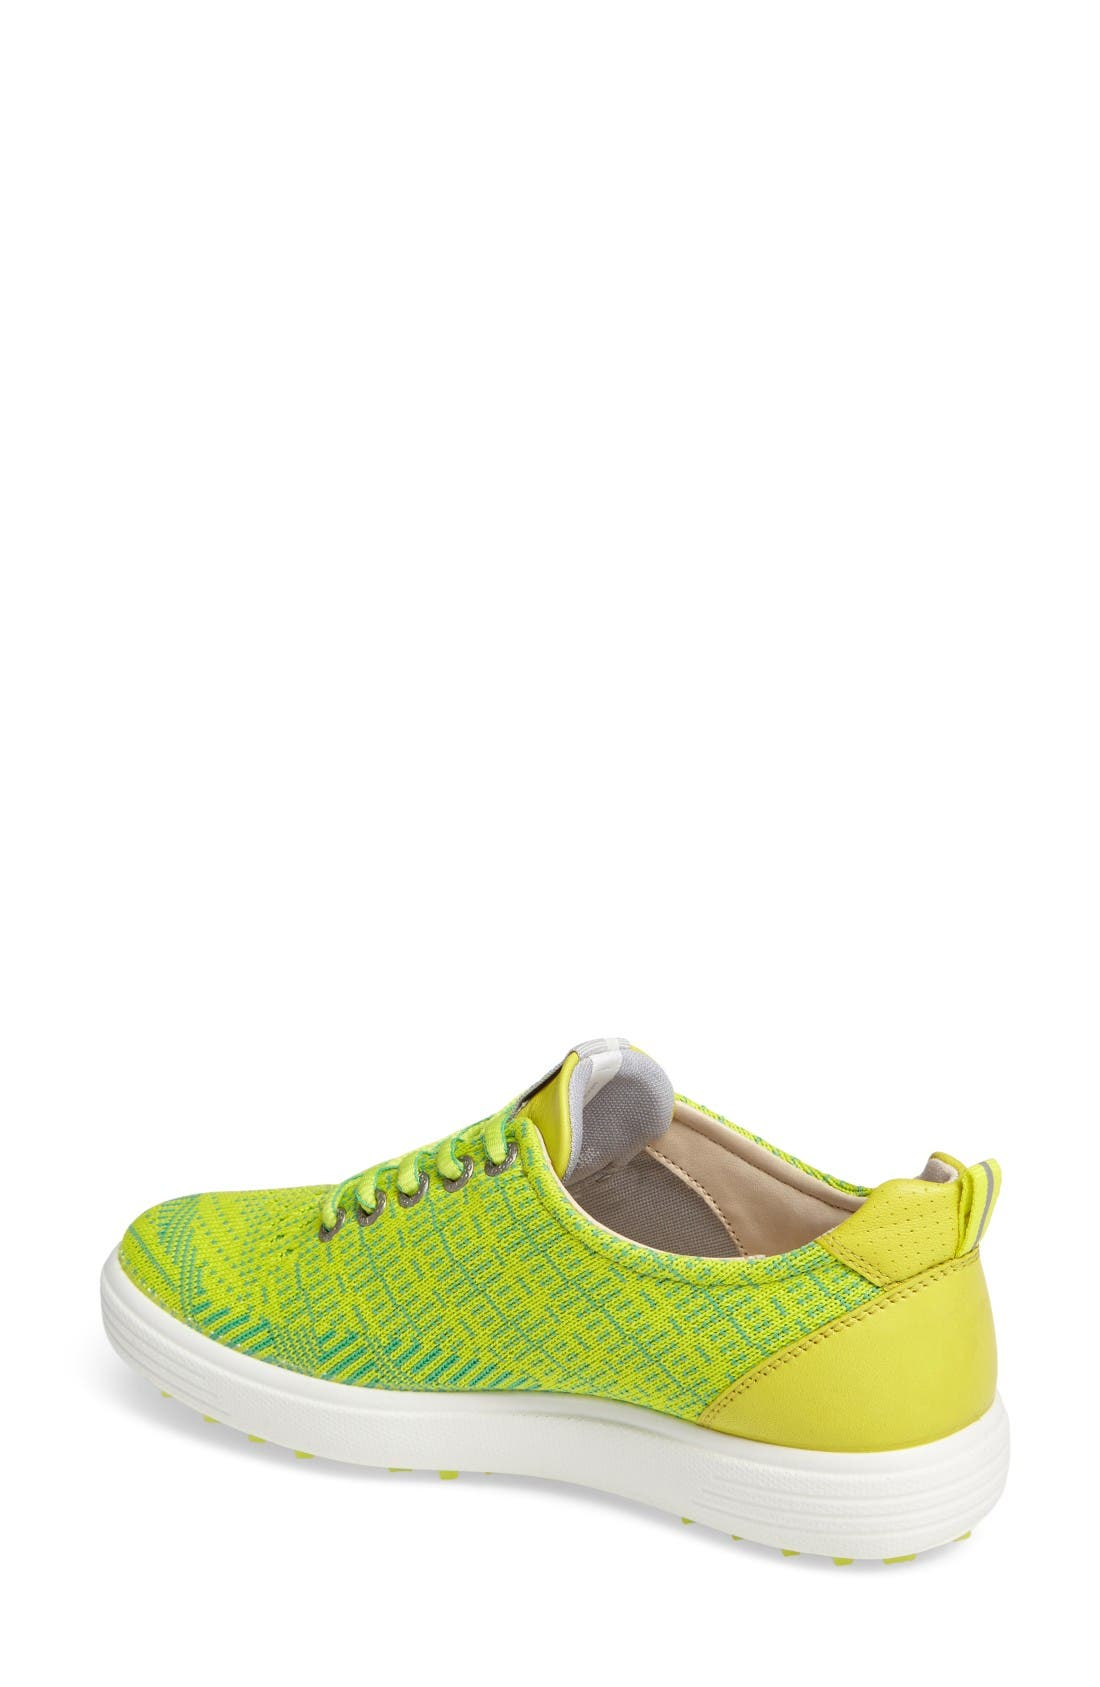 Casual Hybrid Knit Golf Sneaker,                             Alternate thumbnail 2, color,                             Lime Punch/ Neon Leather